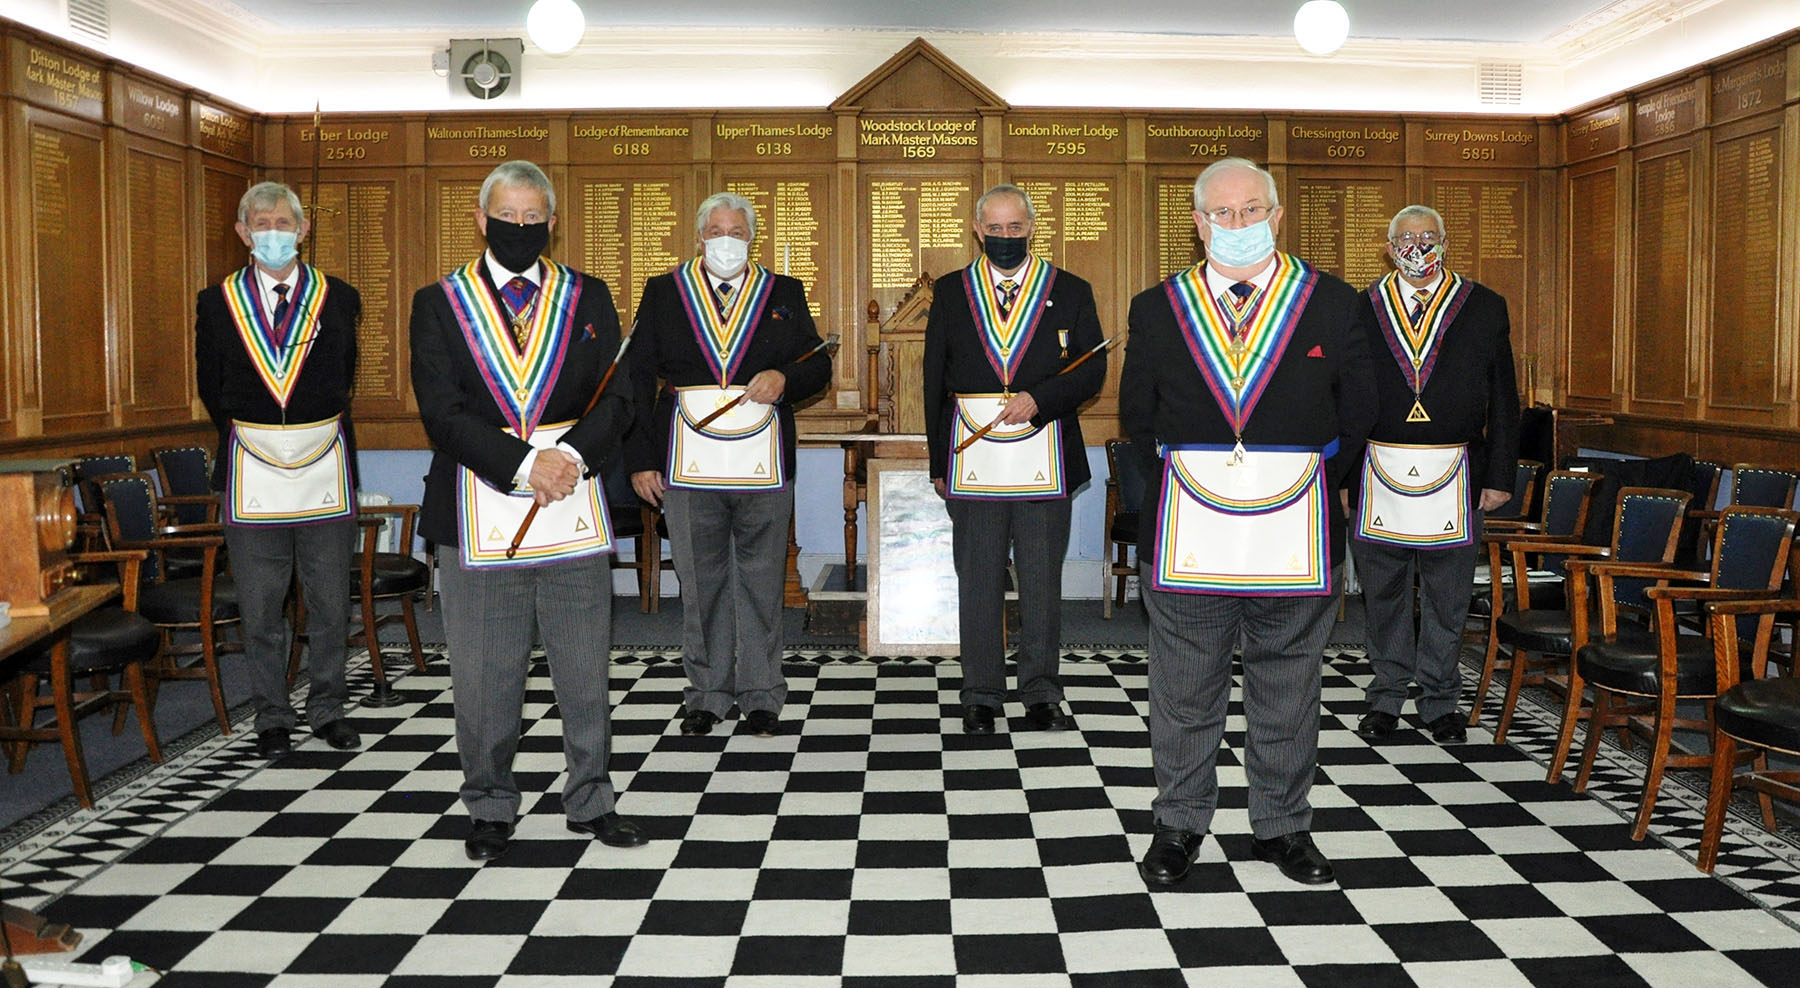 The Surrey Enthroned Commanders Rule of Six meeting